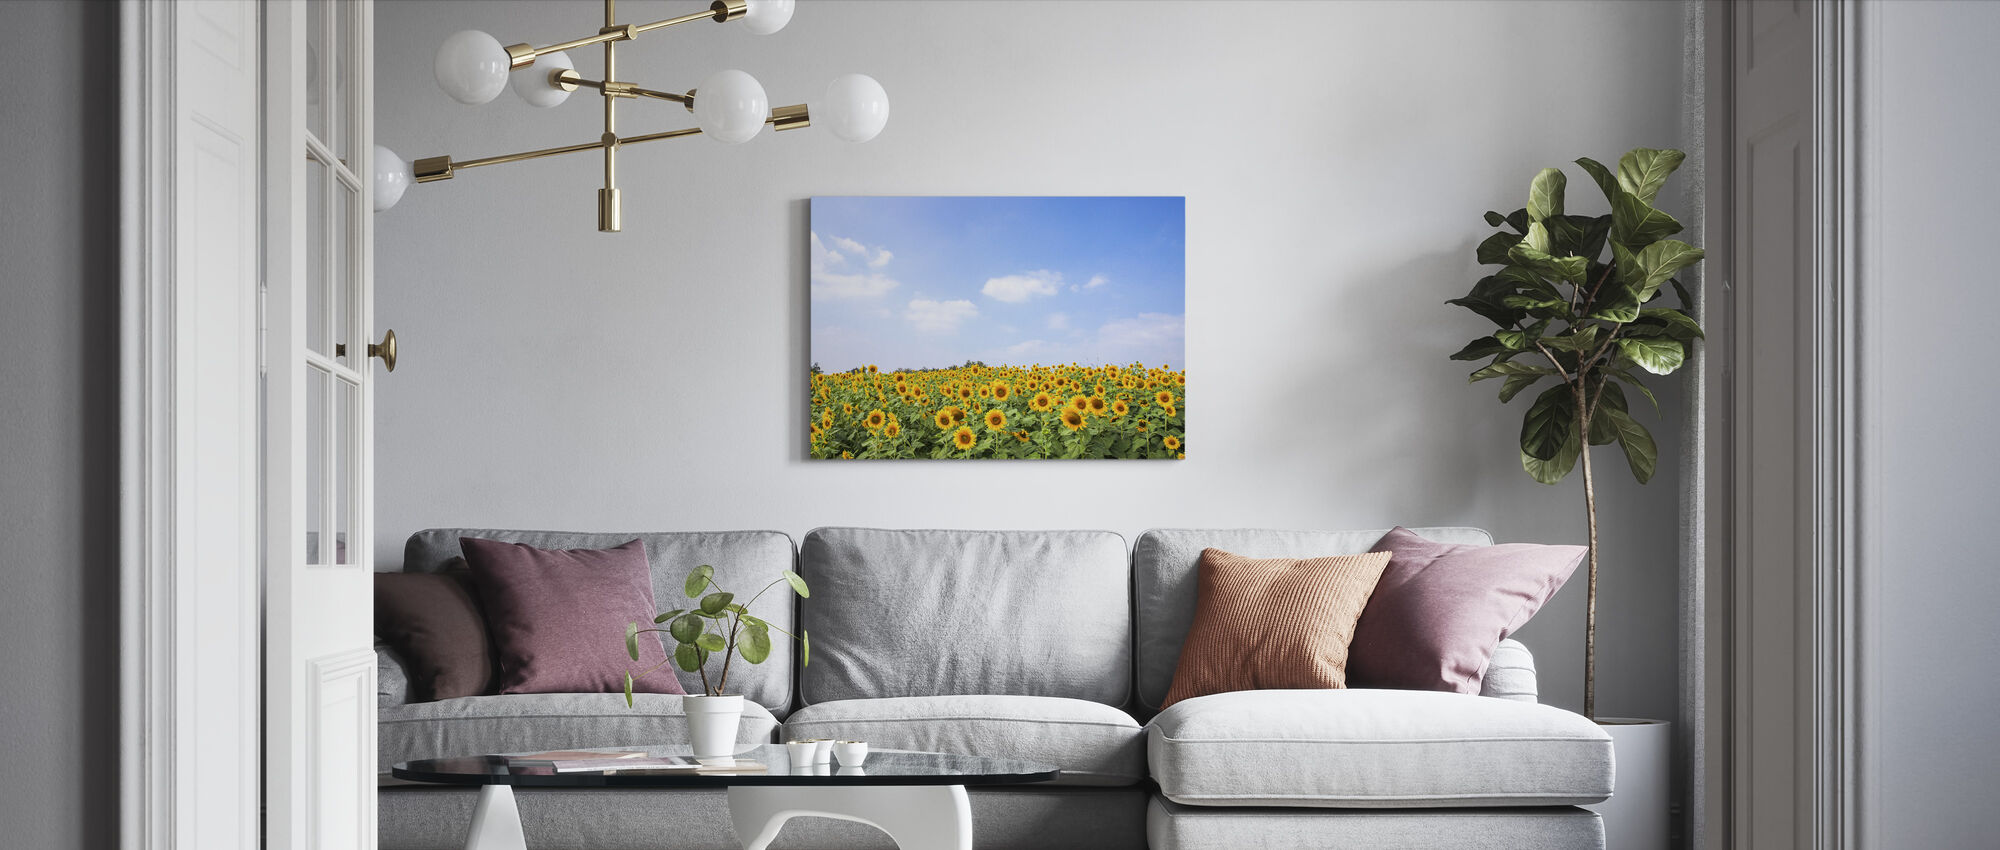 Soft Sunflowers - Canvas print - Living Room